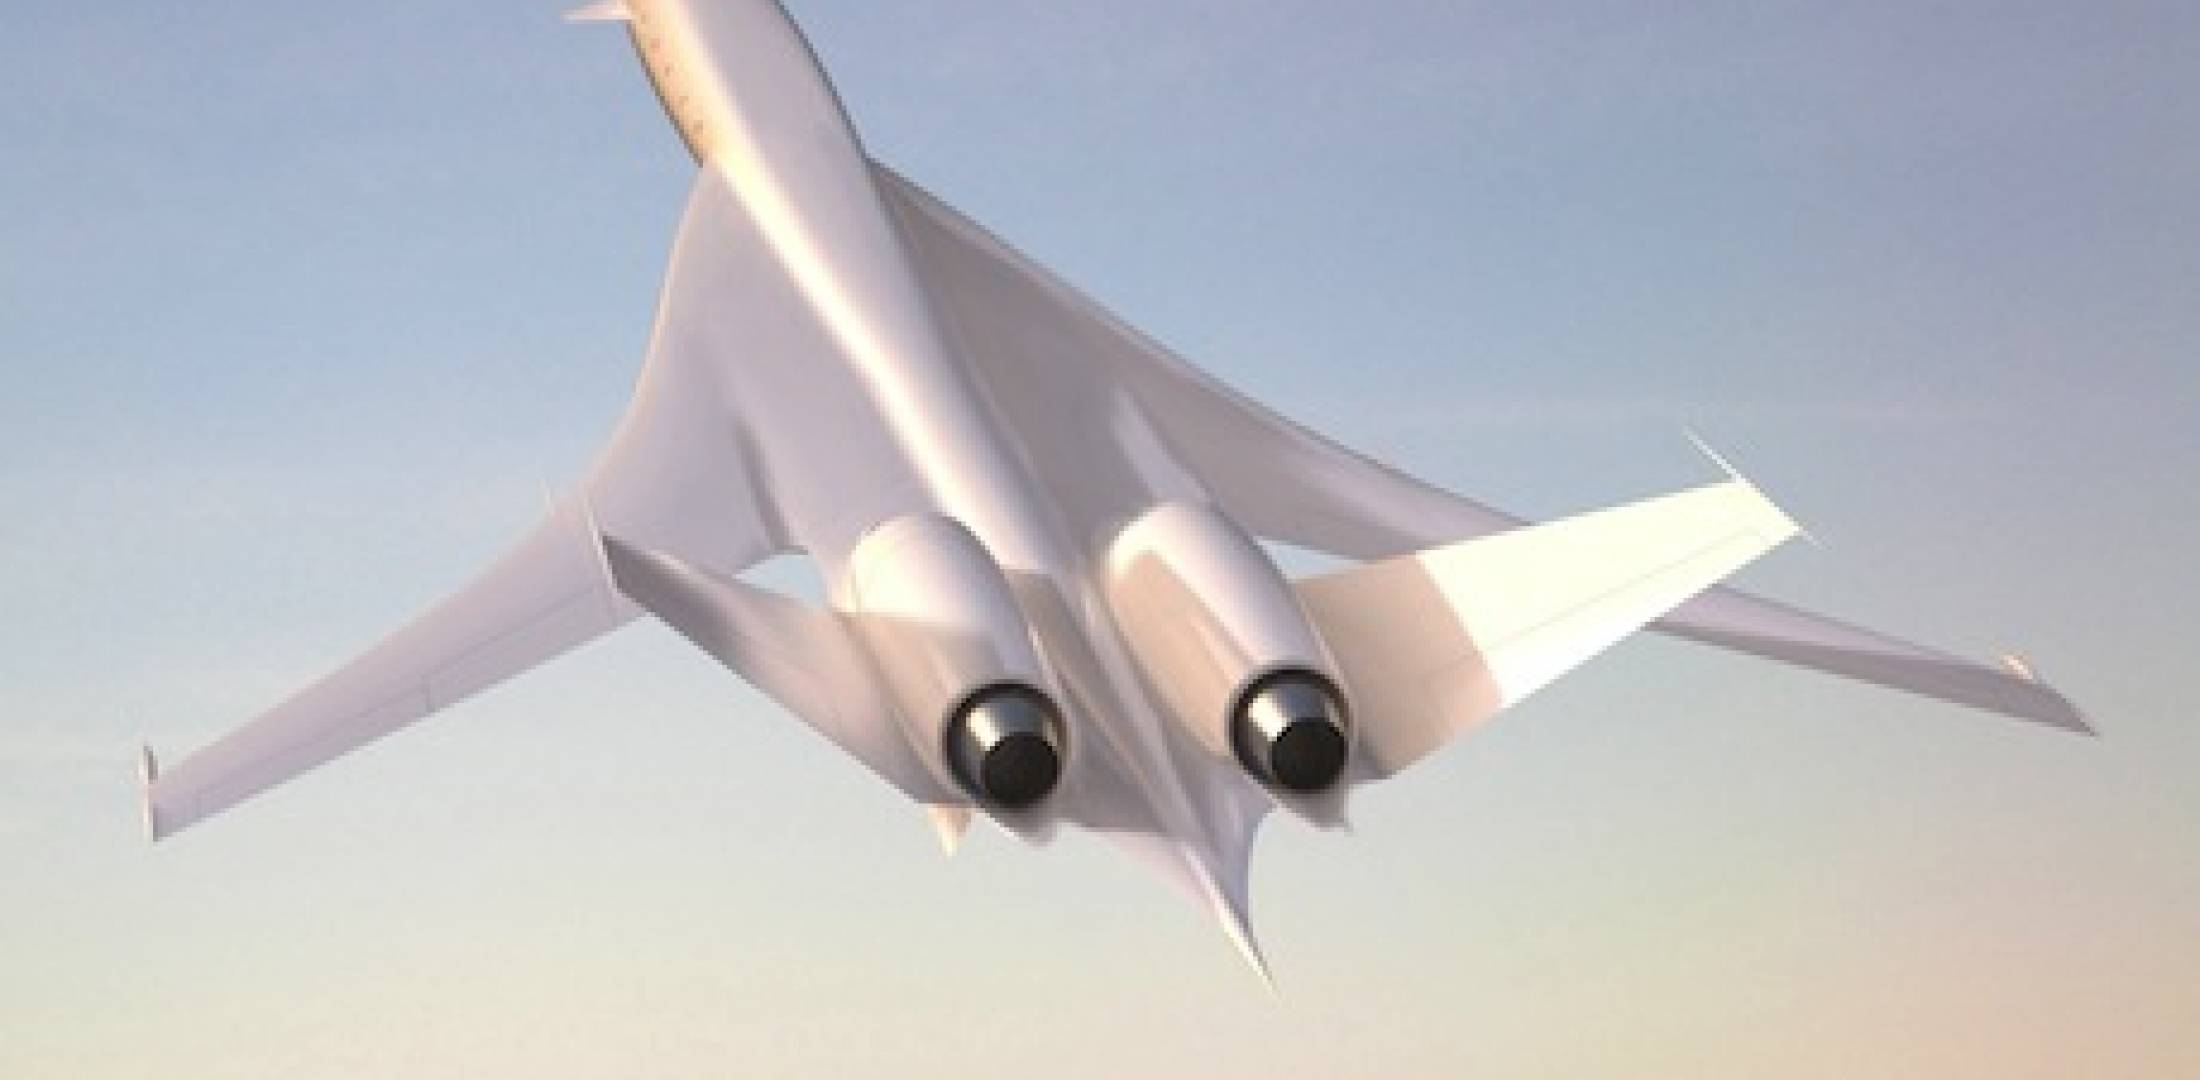 HyperMach said it is increasing the top speed of its planned supersonic business